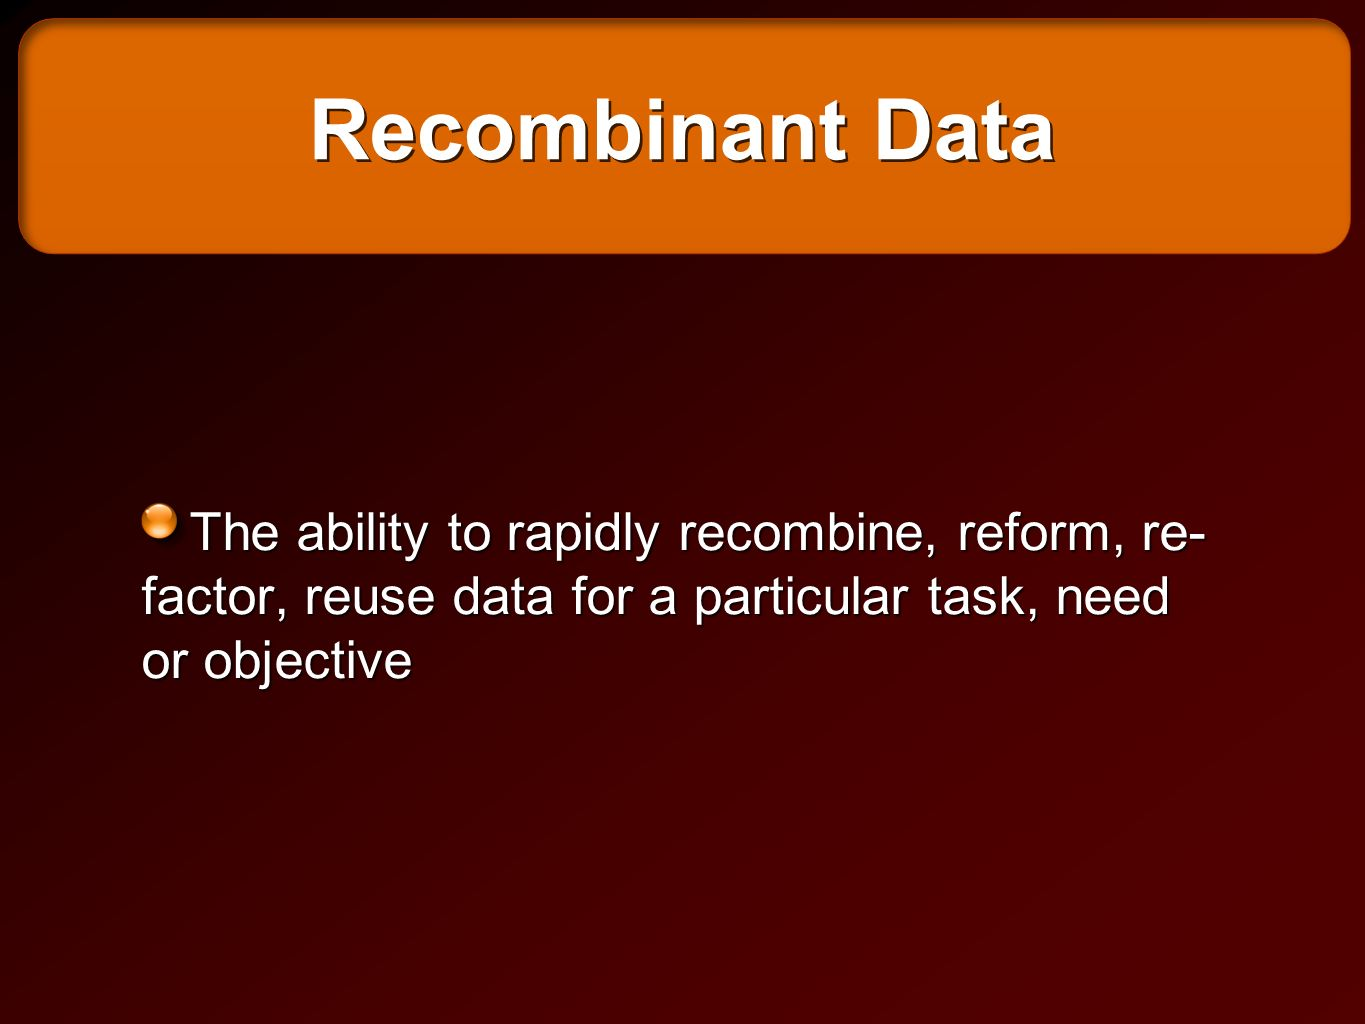 Recombinant Data The ability to rapidly recombine, reform, re- factor, reuse data for a particular task, need or objective